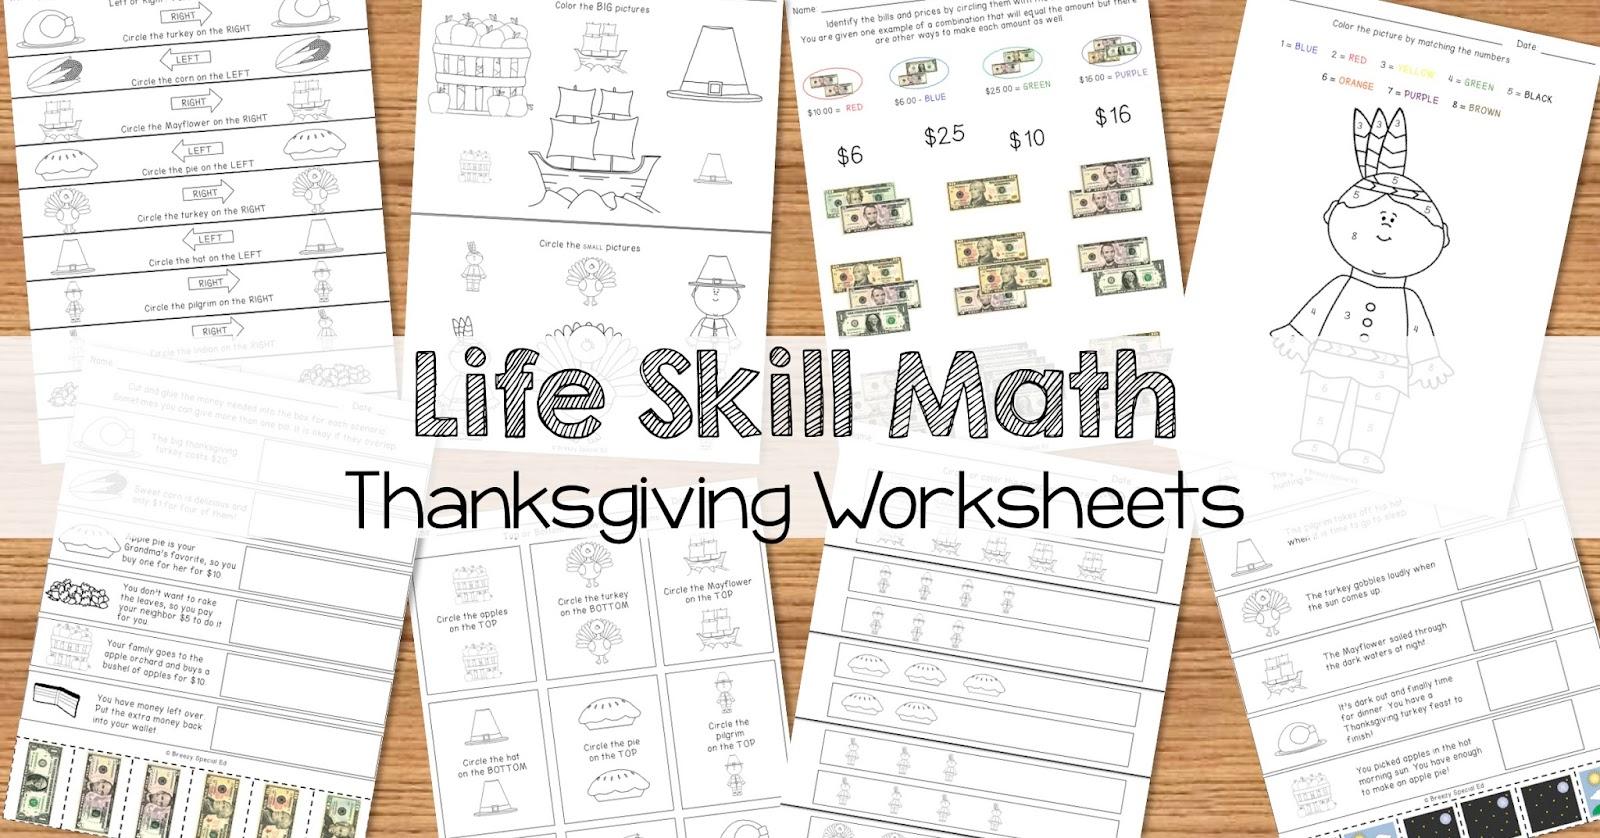 Worksheets Life Skills Math Worksheets math life skill worksheets thanksgiving themed breezy special ed i was busy this summer creating daily journals to go with our themes and now am packs along wi